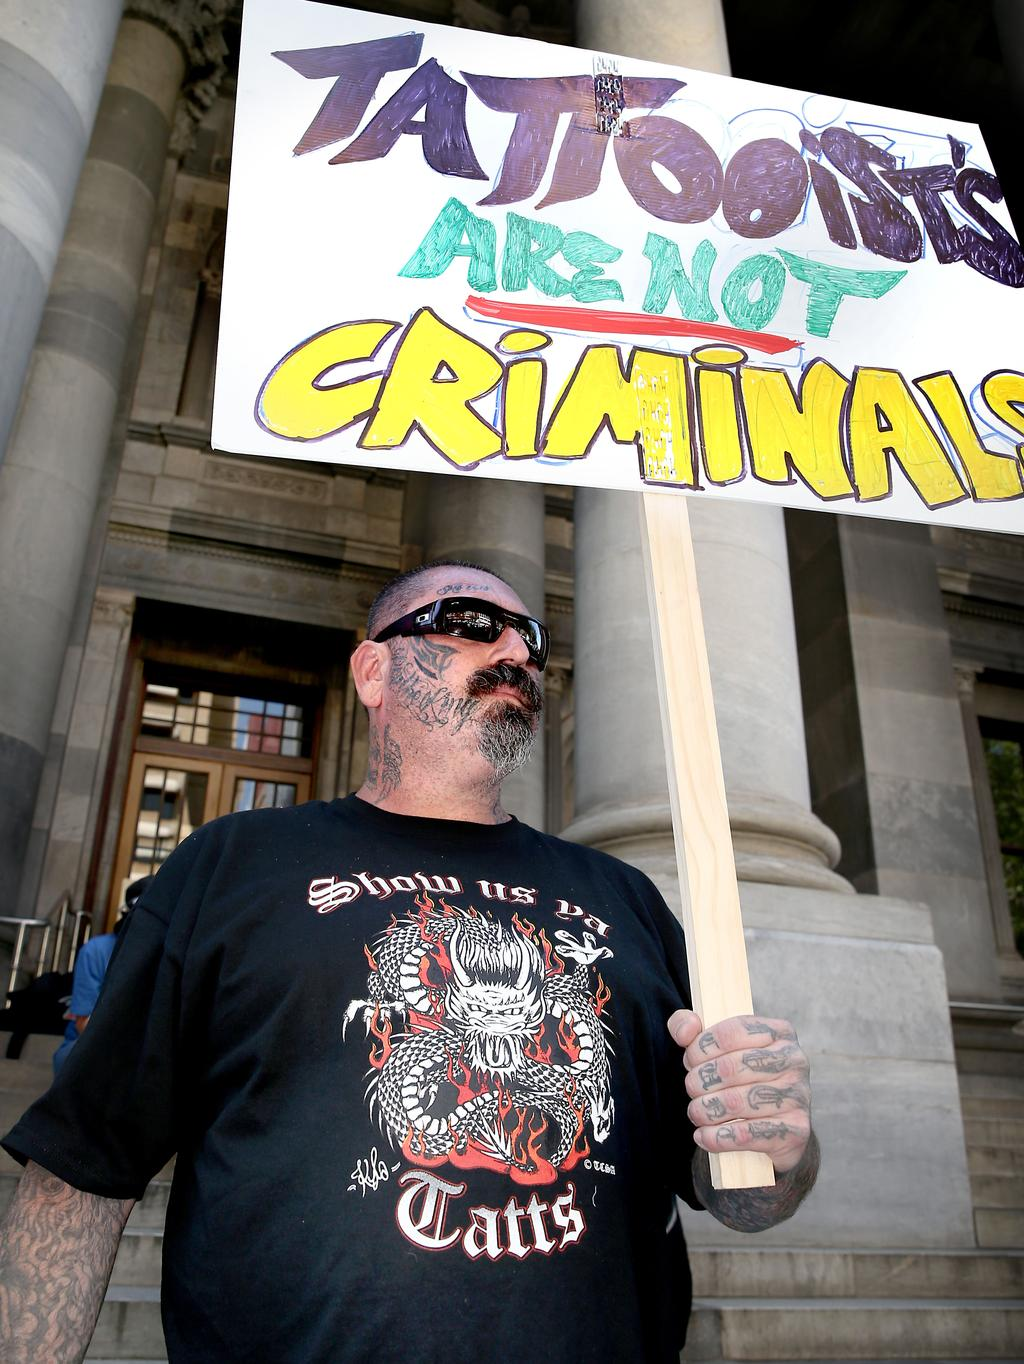 Tattoo parlour owners protest against new laws banning for New tattoo laws